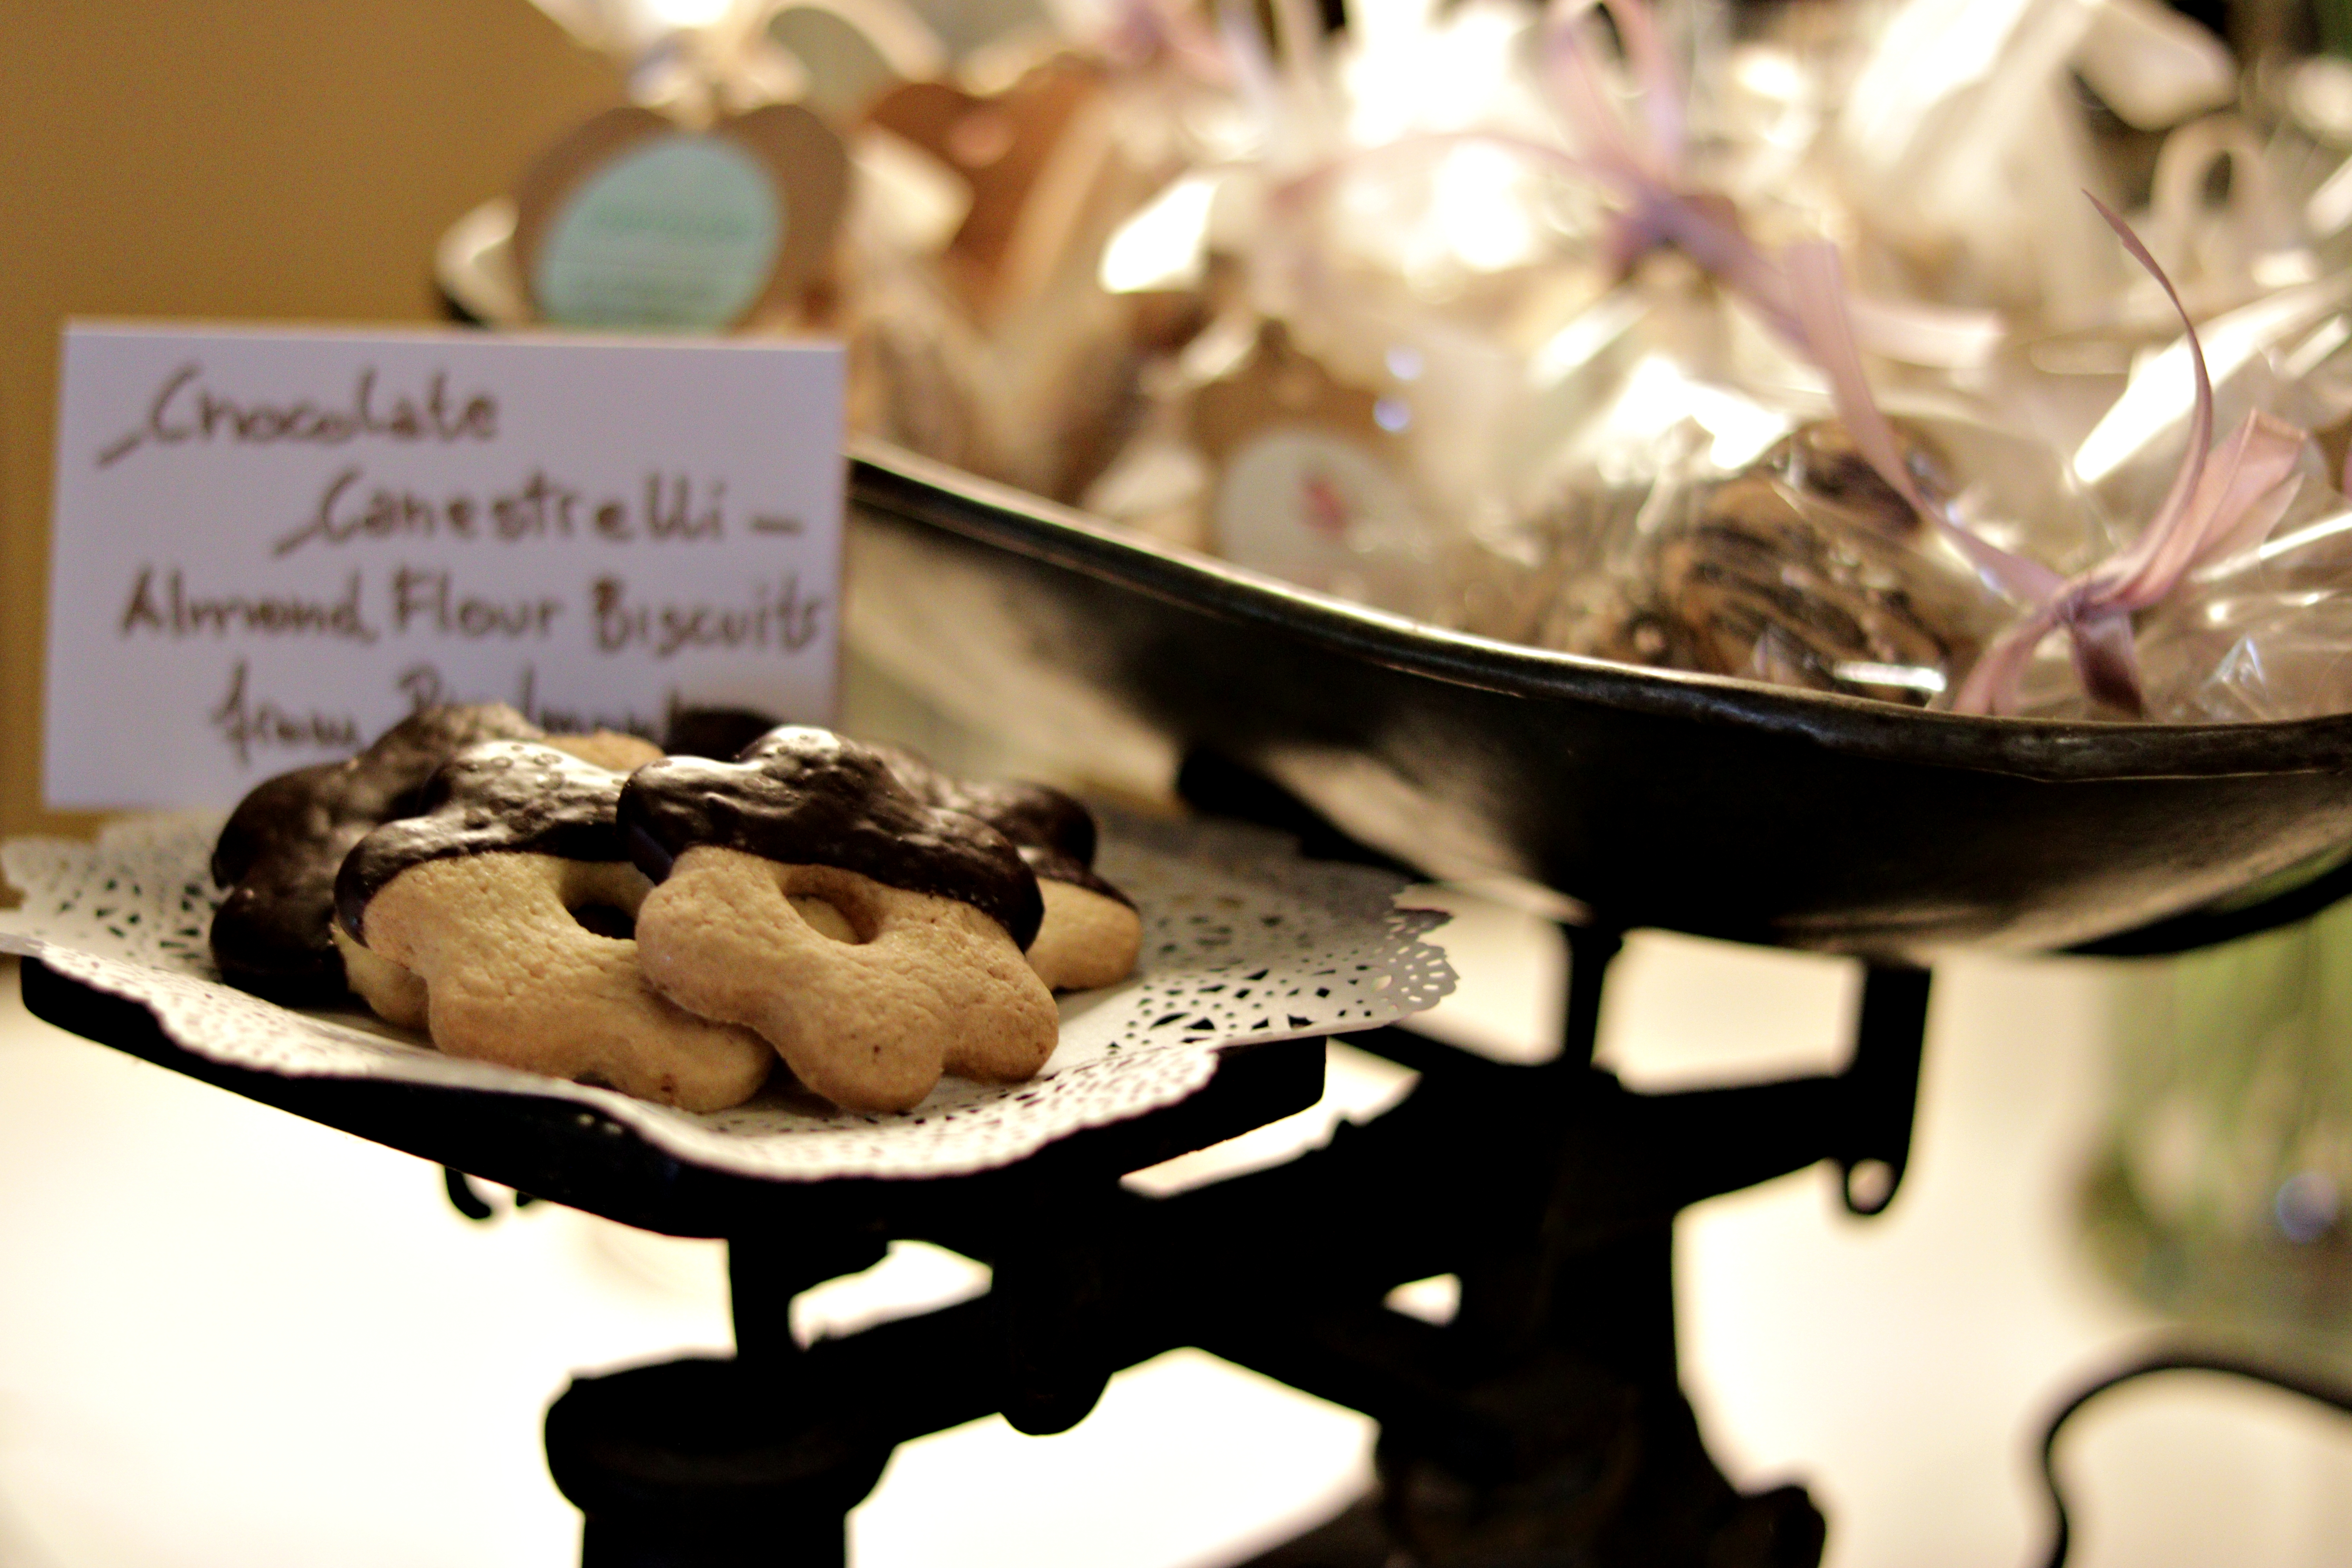 Chocolate & Almond Biscuits